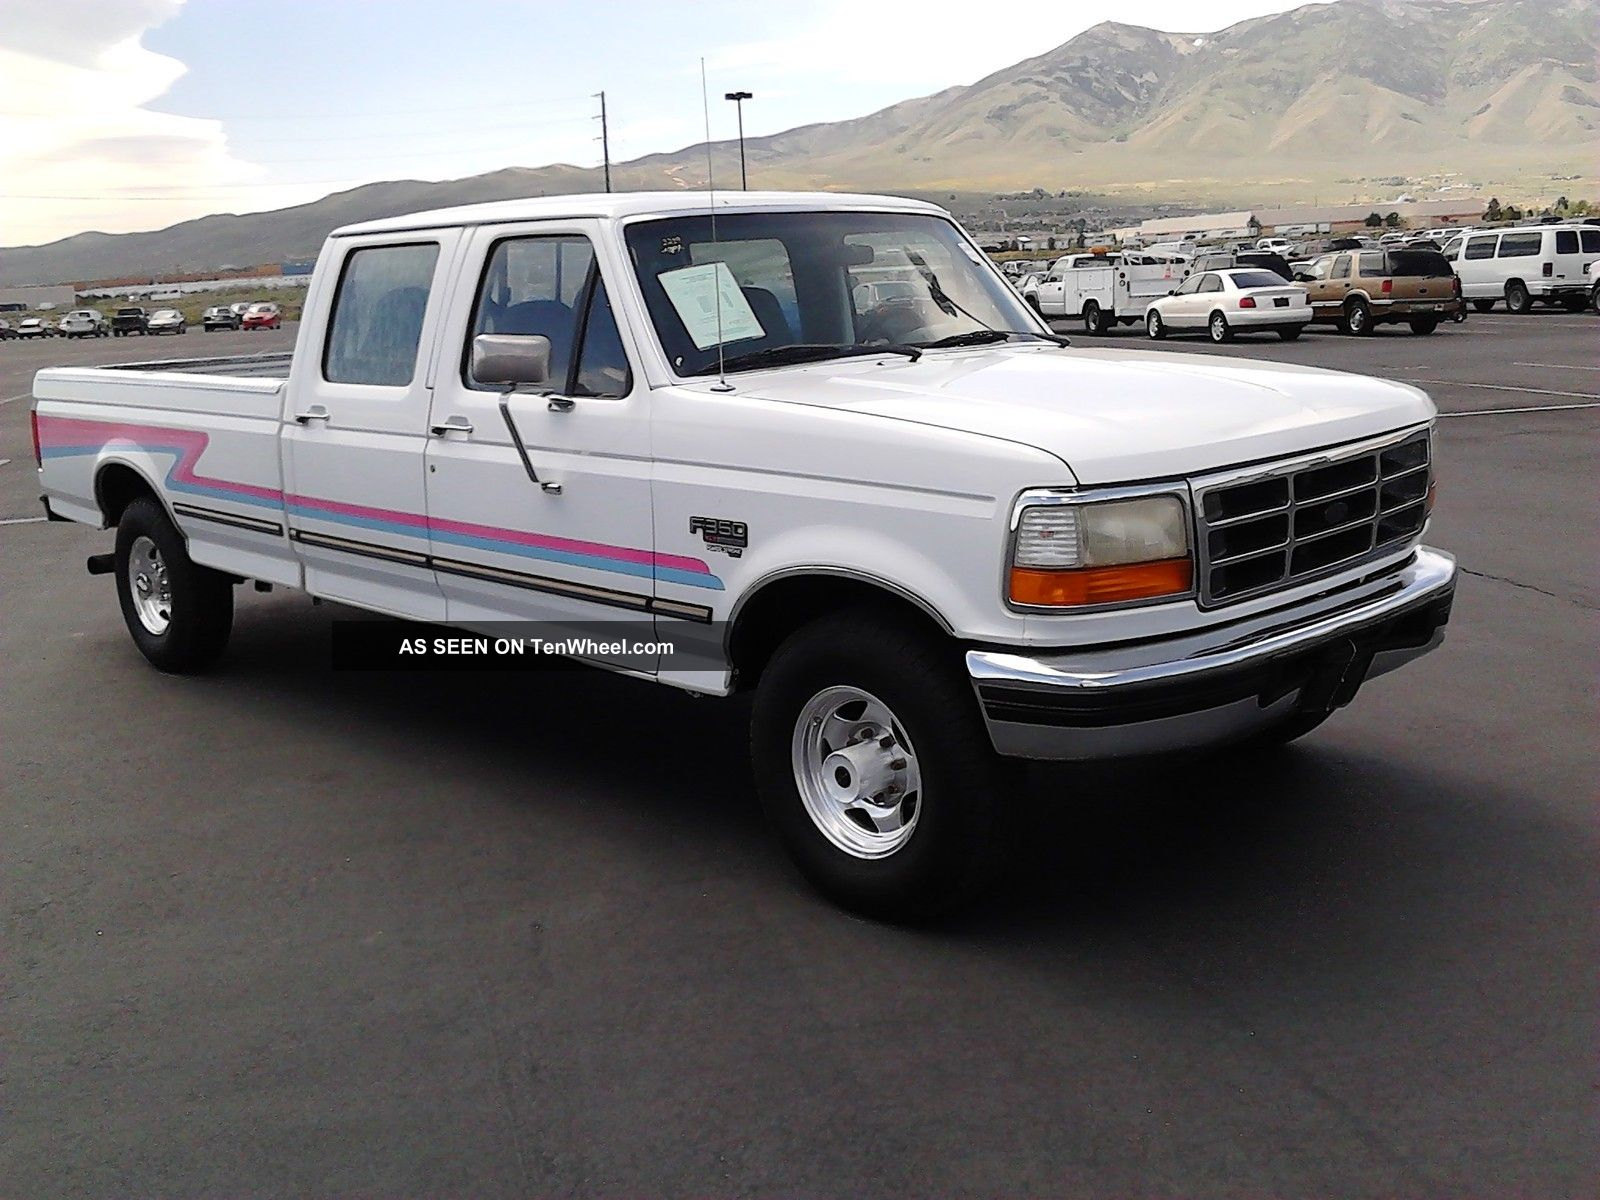 1996 Ford F350 Crewcab 7.  3 Powerstroke Turb Diesel / 60 Day Layaway / World Ship F-350 photo